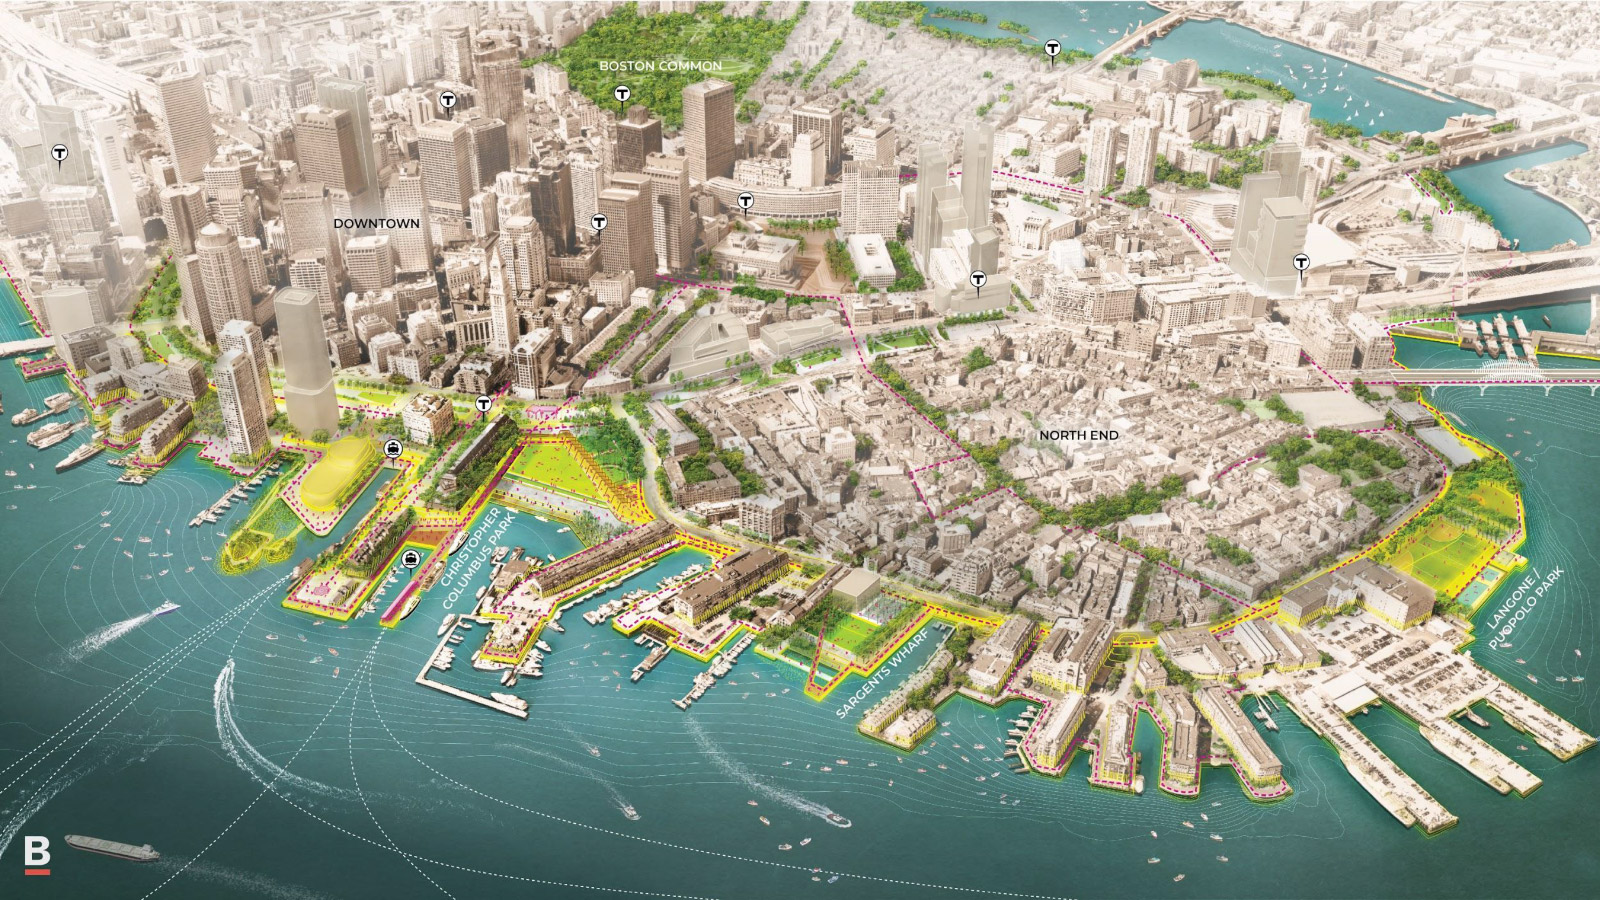 A potential vision of a resilient downtown Boston.